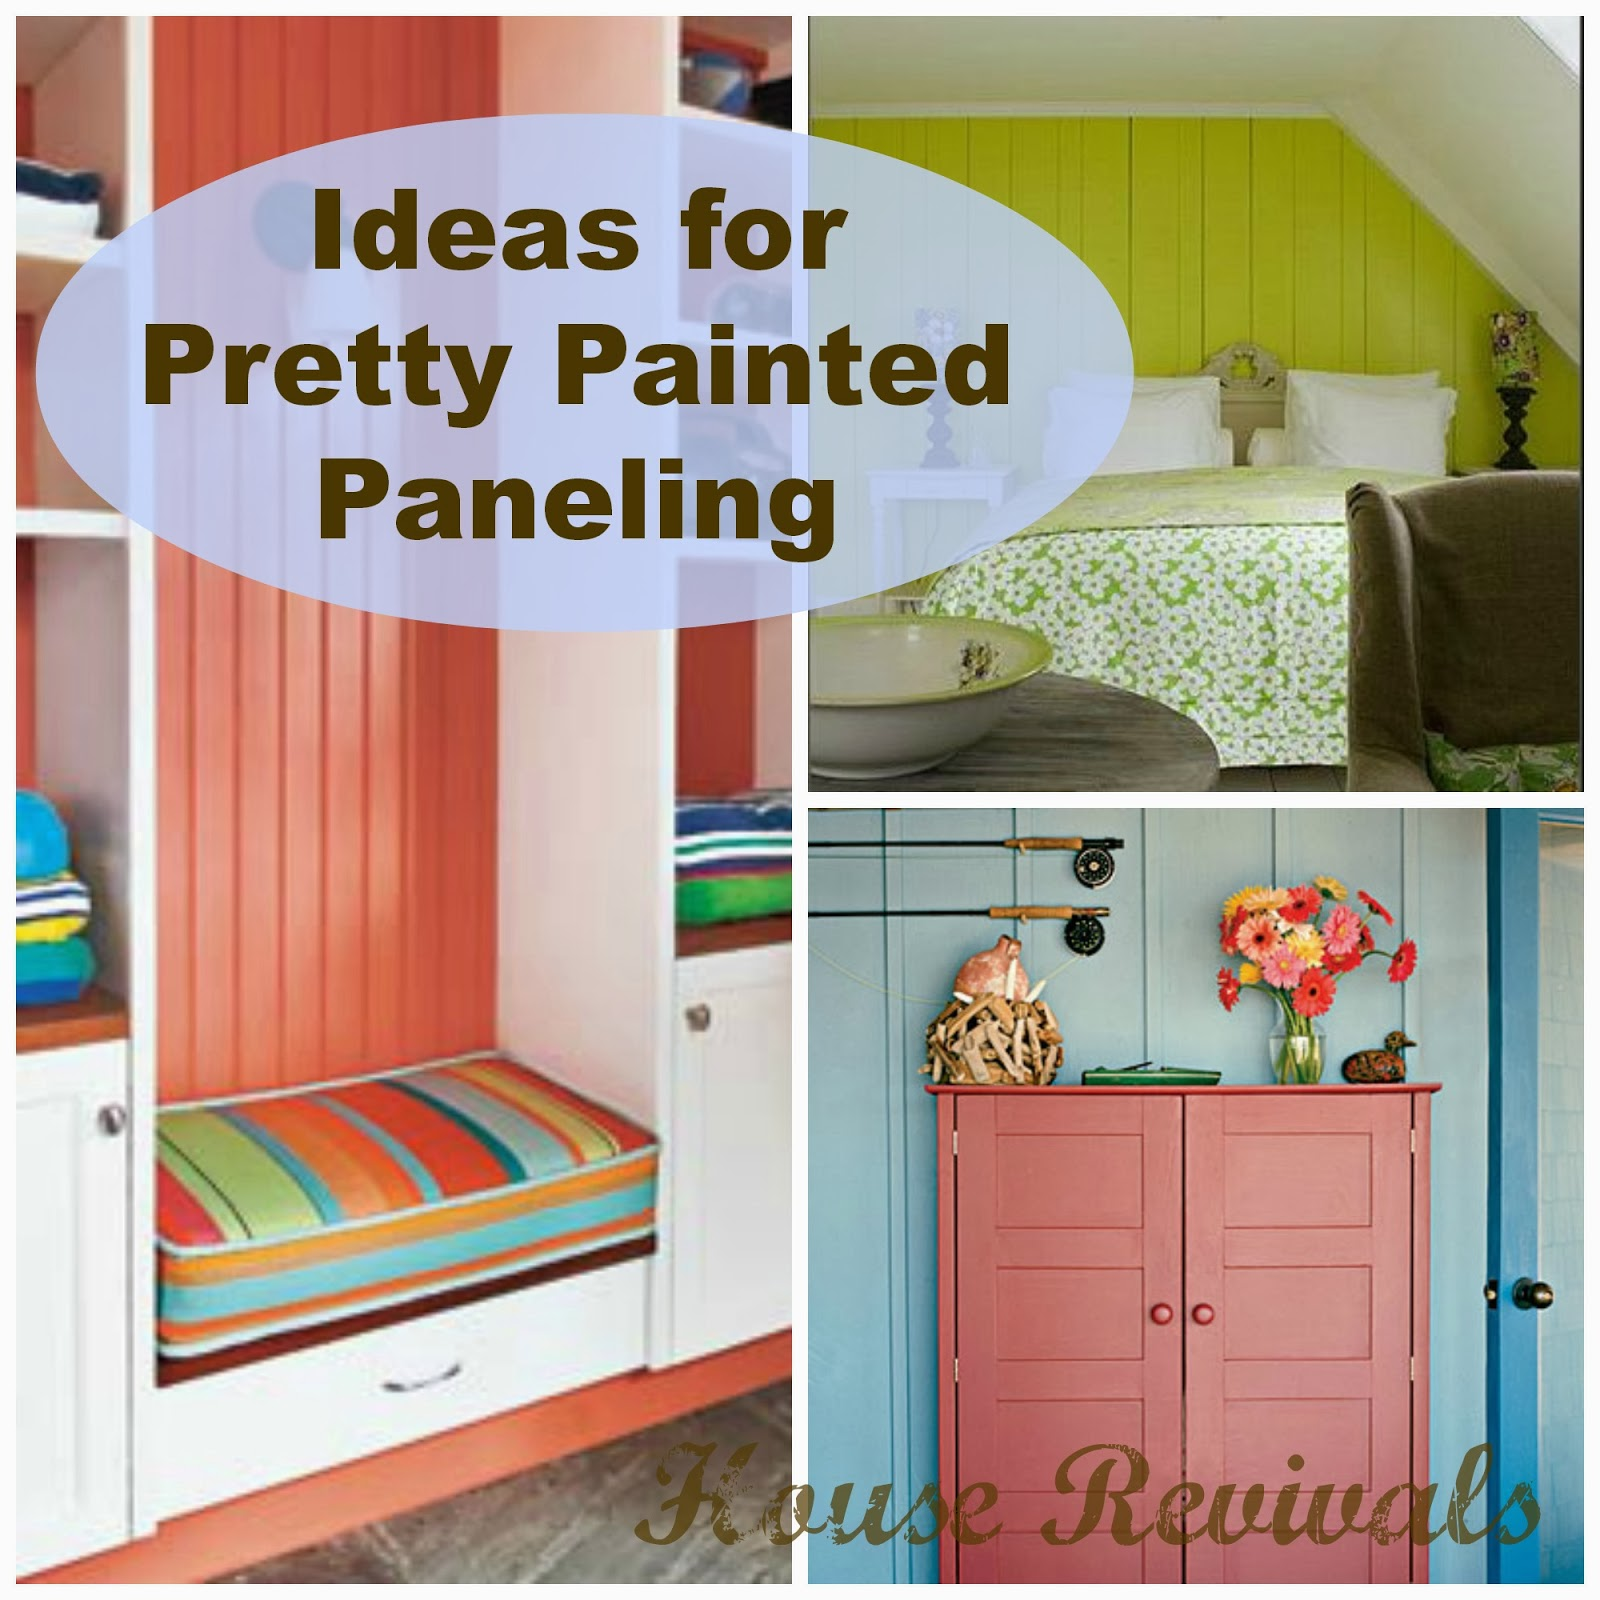 What Color To Paint Paneling House Revivals Colorful Painted Paneling